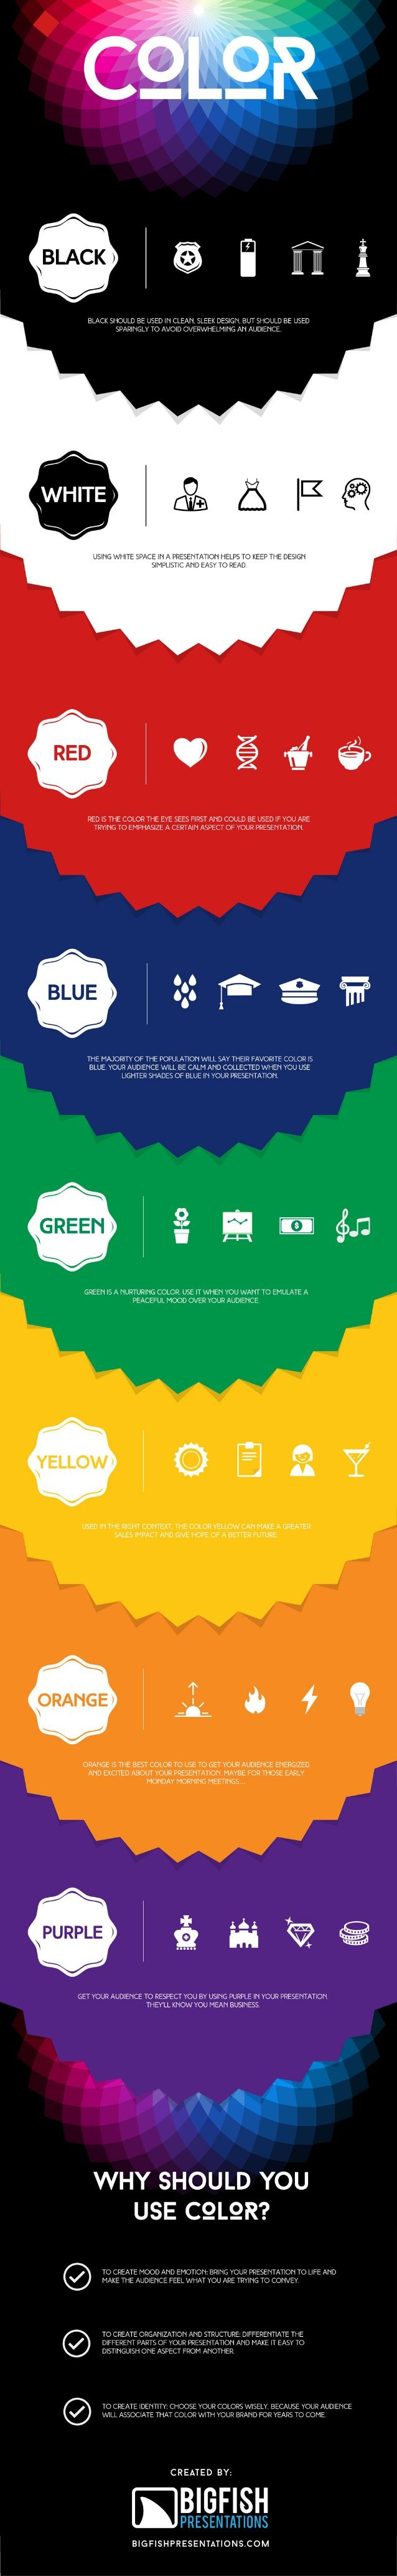 Colors web design psychology - The Psychology Of Color In Presentations Infographic By Big Fish Presentations Via Slideshare